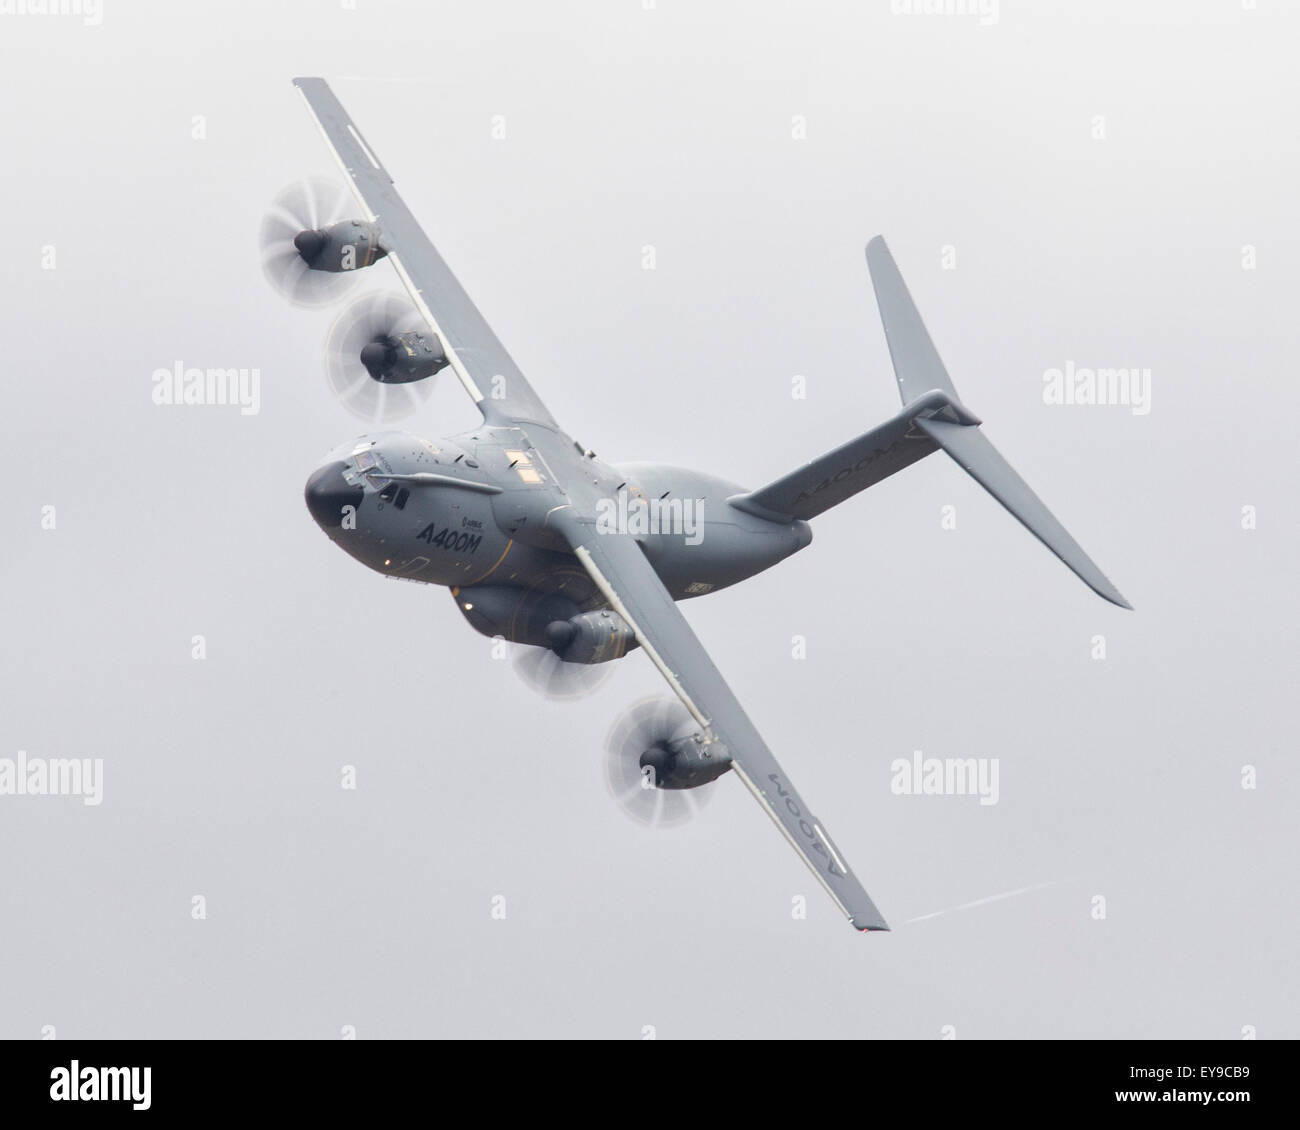 Airbus A400-M military transport aircraft flying at the 2015 Royal International Air Tattoo - Stock Image